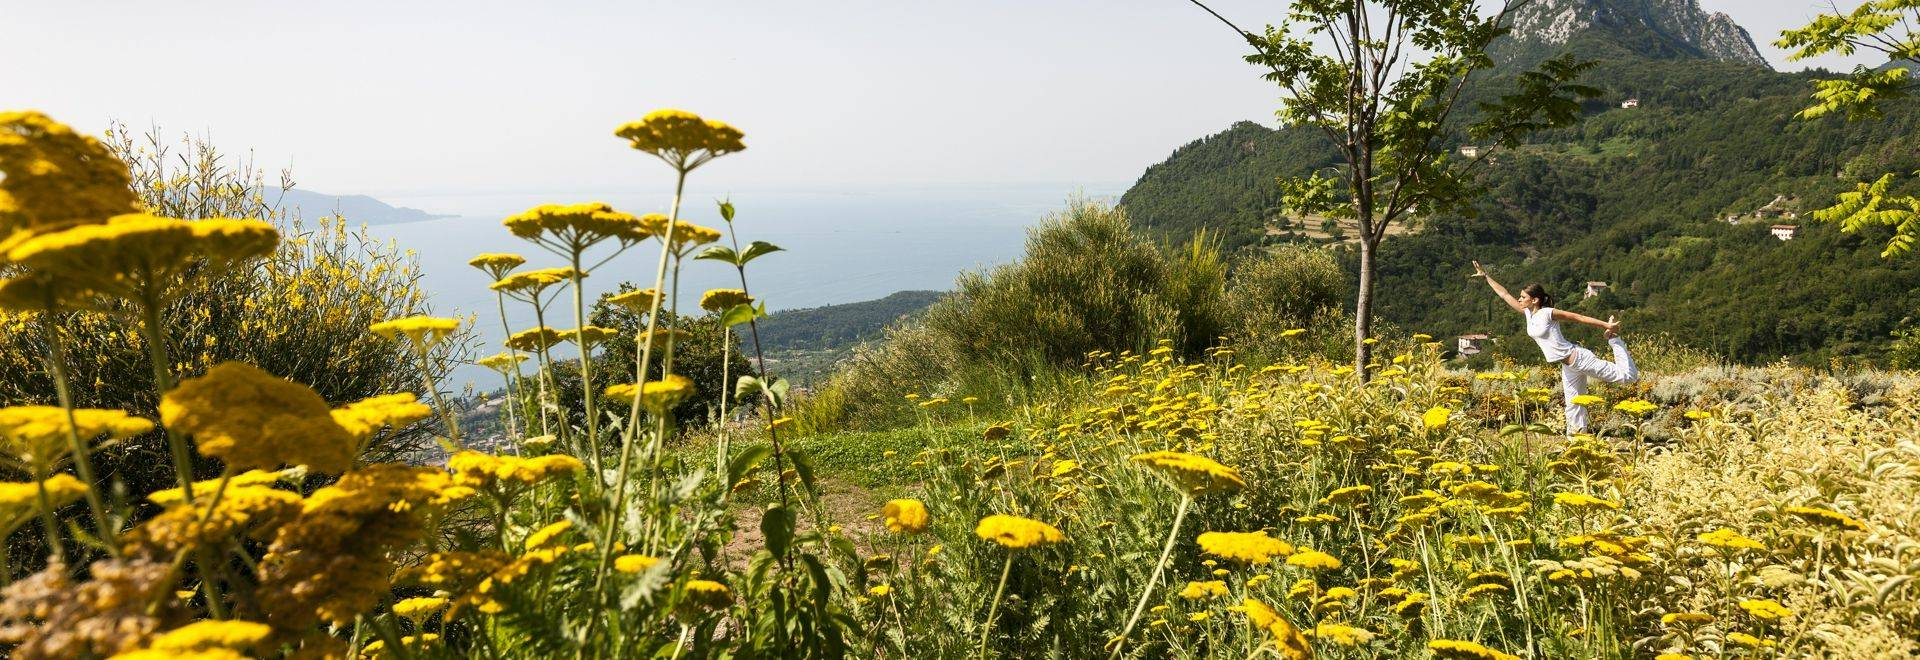 Italy; Lago di Garda; Lefay Resort and Spa; Via Feltrinelli 118; 25084 Gargnano. www.lefayresorts.com, Therapeutic Gardens